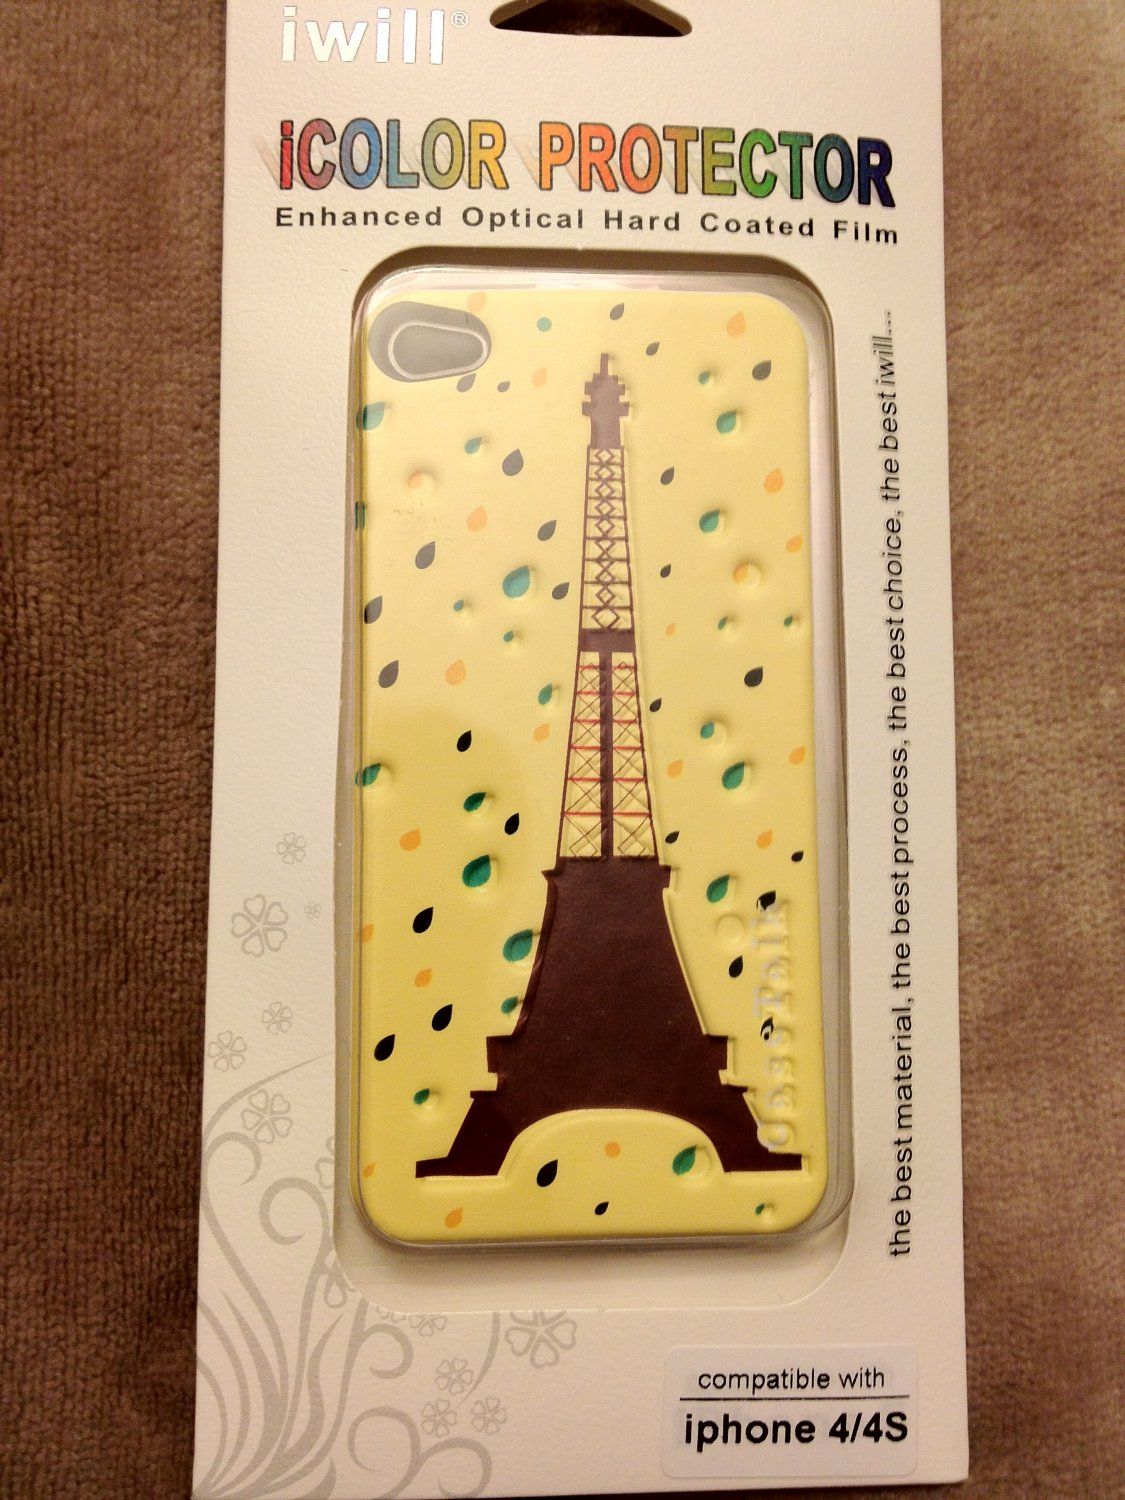 iPhone 4/4s iwill icolor protector (Case Talk Yellow Cheese)